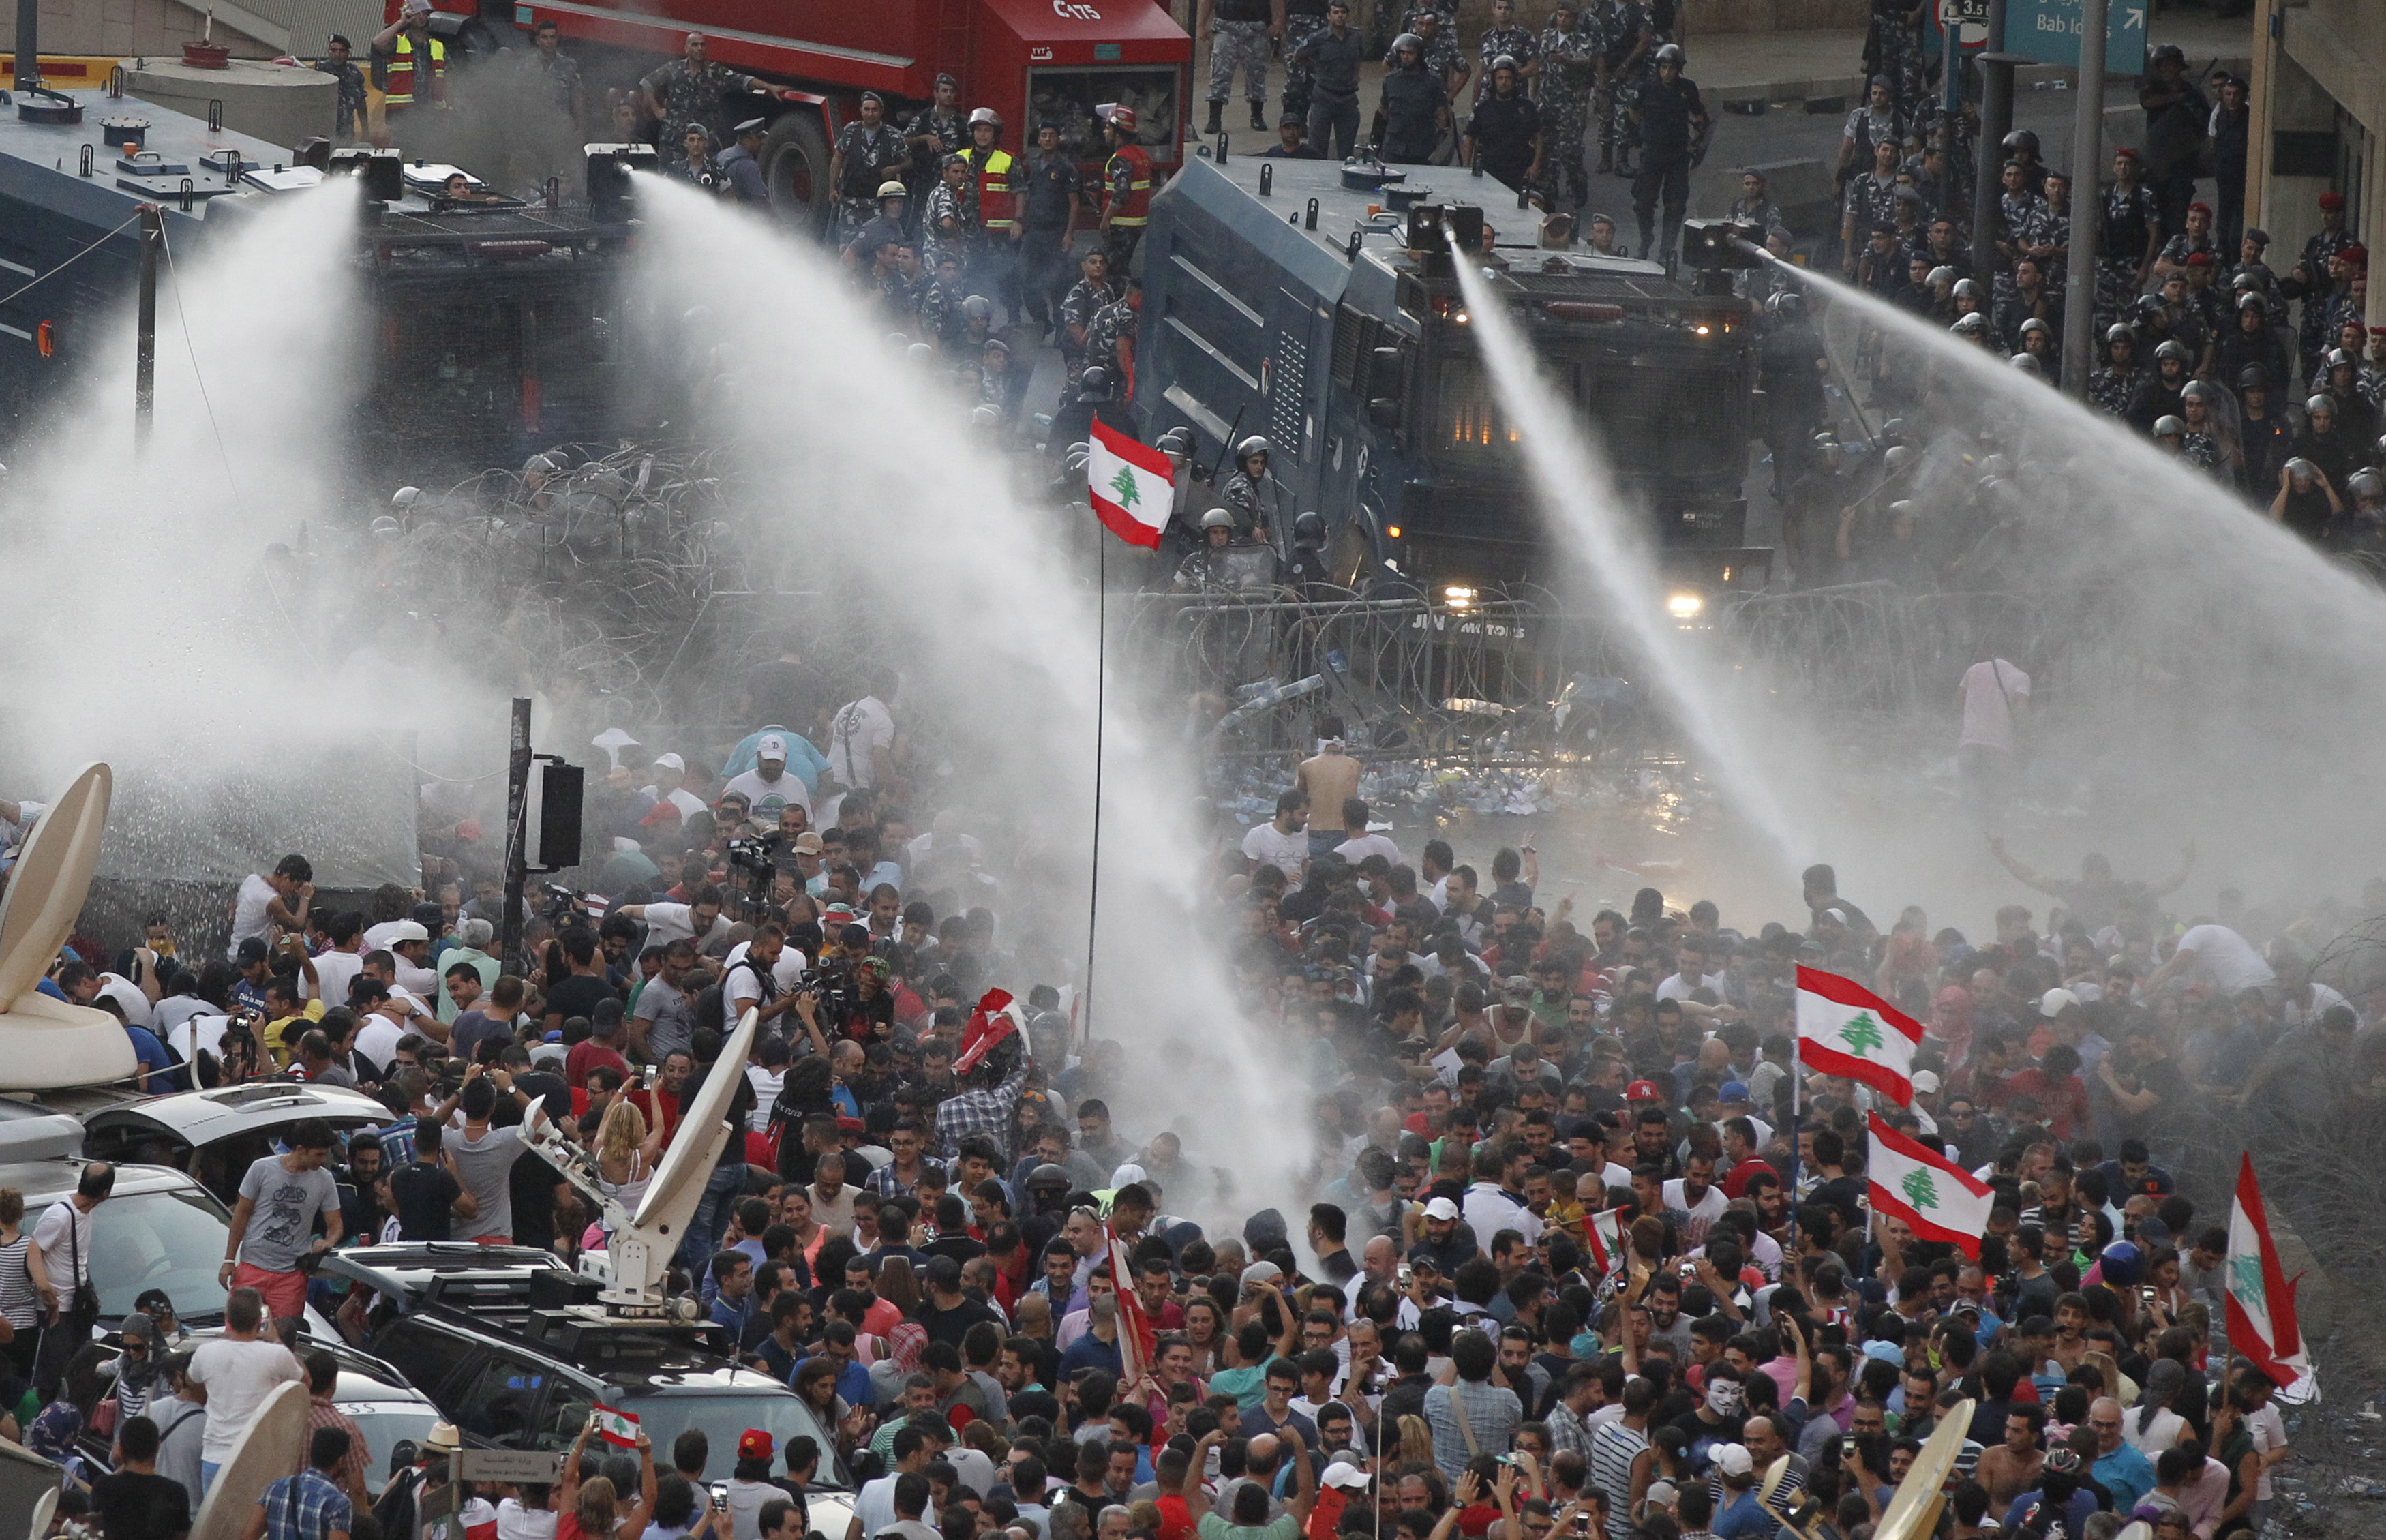 Lebanese protesters are sprayed with water during a demonstration against the government near Prime Minister Tammam Salam's offices in Beirut on Aug. 23. Photo by Mohamed Azakir/Reuters